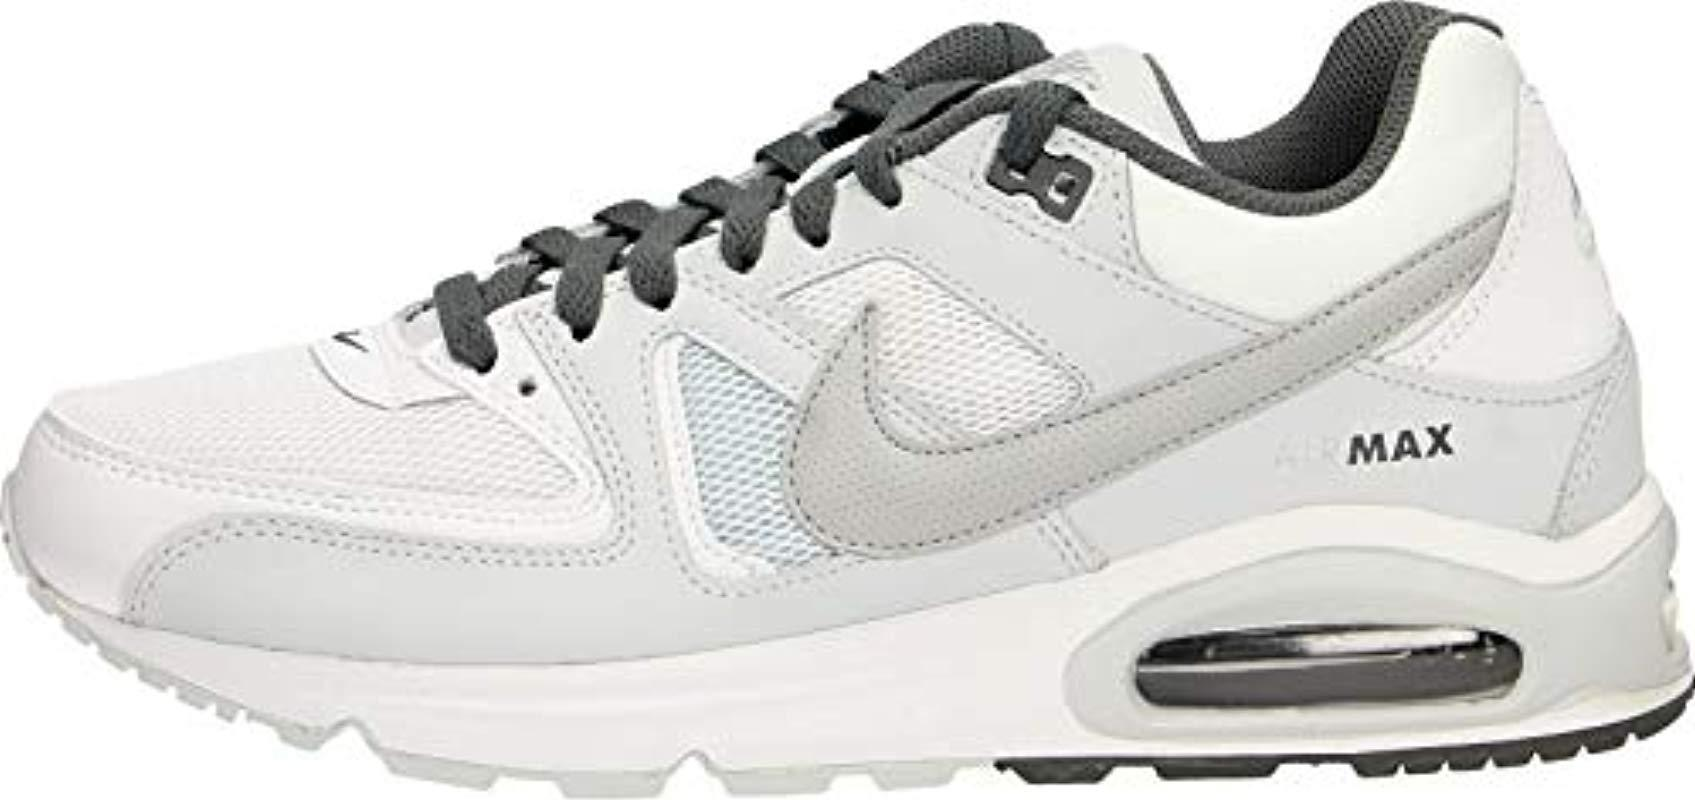 big sale c73c8 6b0ab Nike Air Max Command Running Shoes in Gray for Men - Lyst